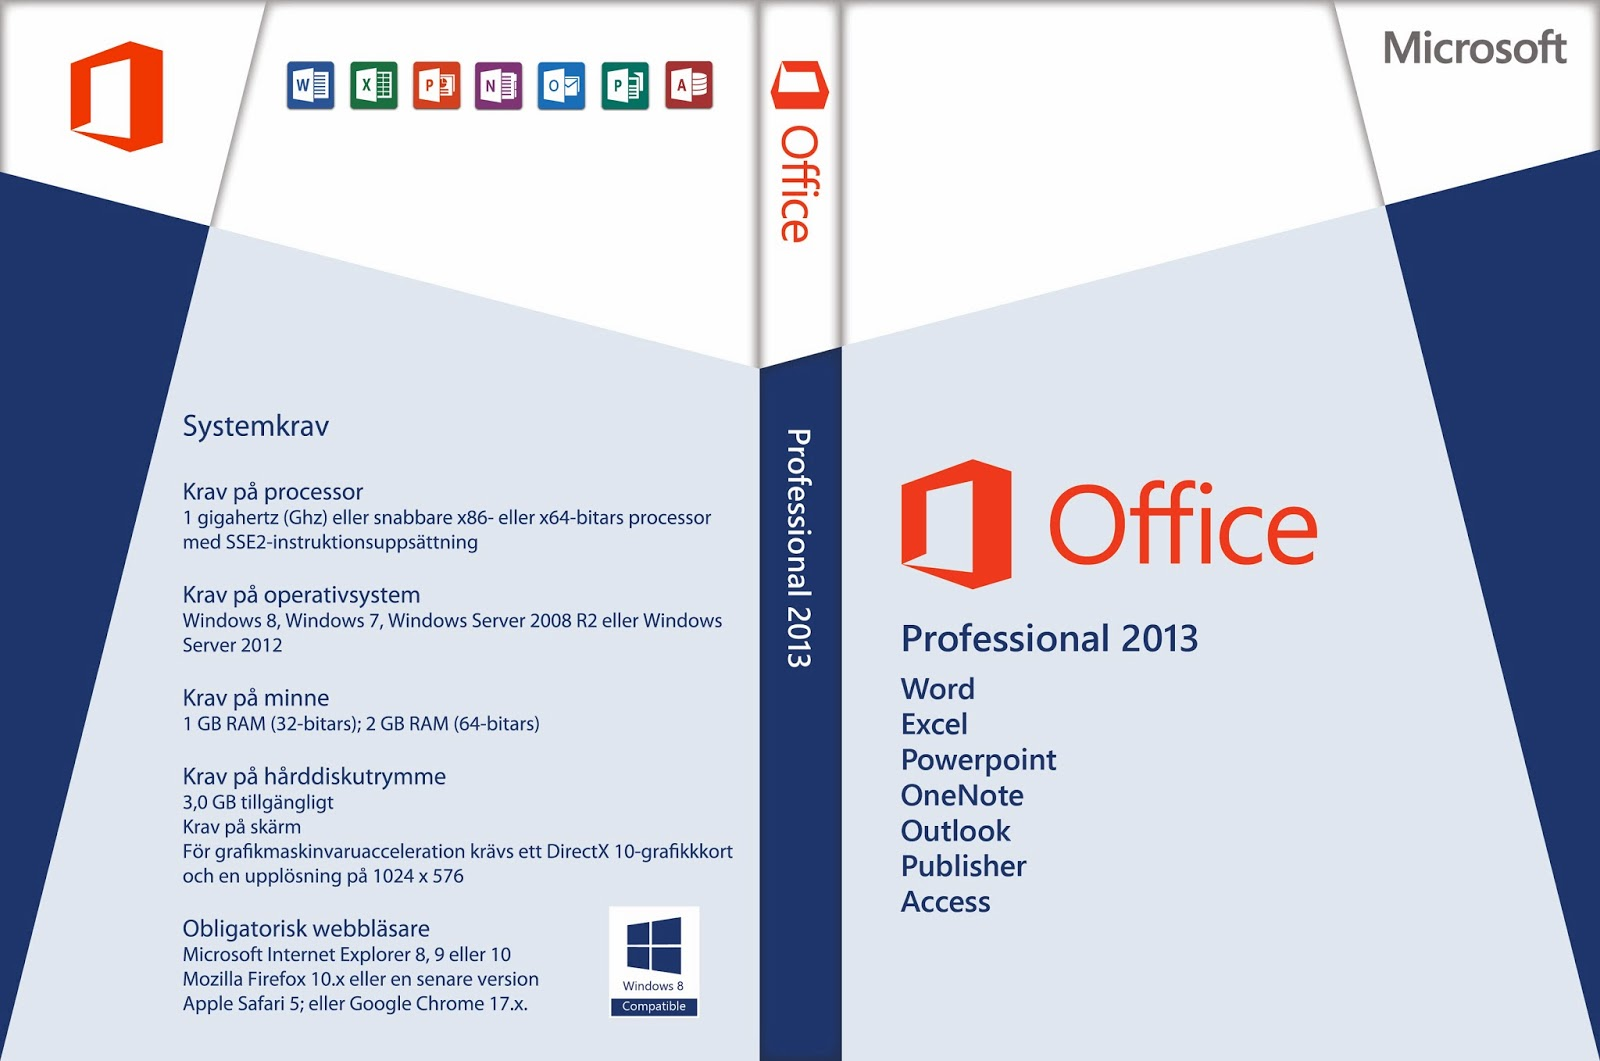 microsoft office 2013 professional plus product key for windows 8.1